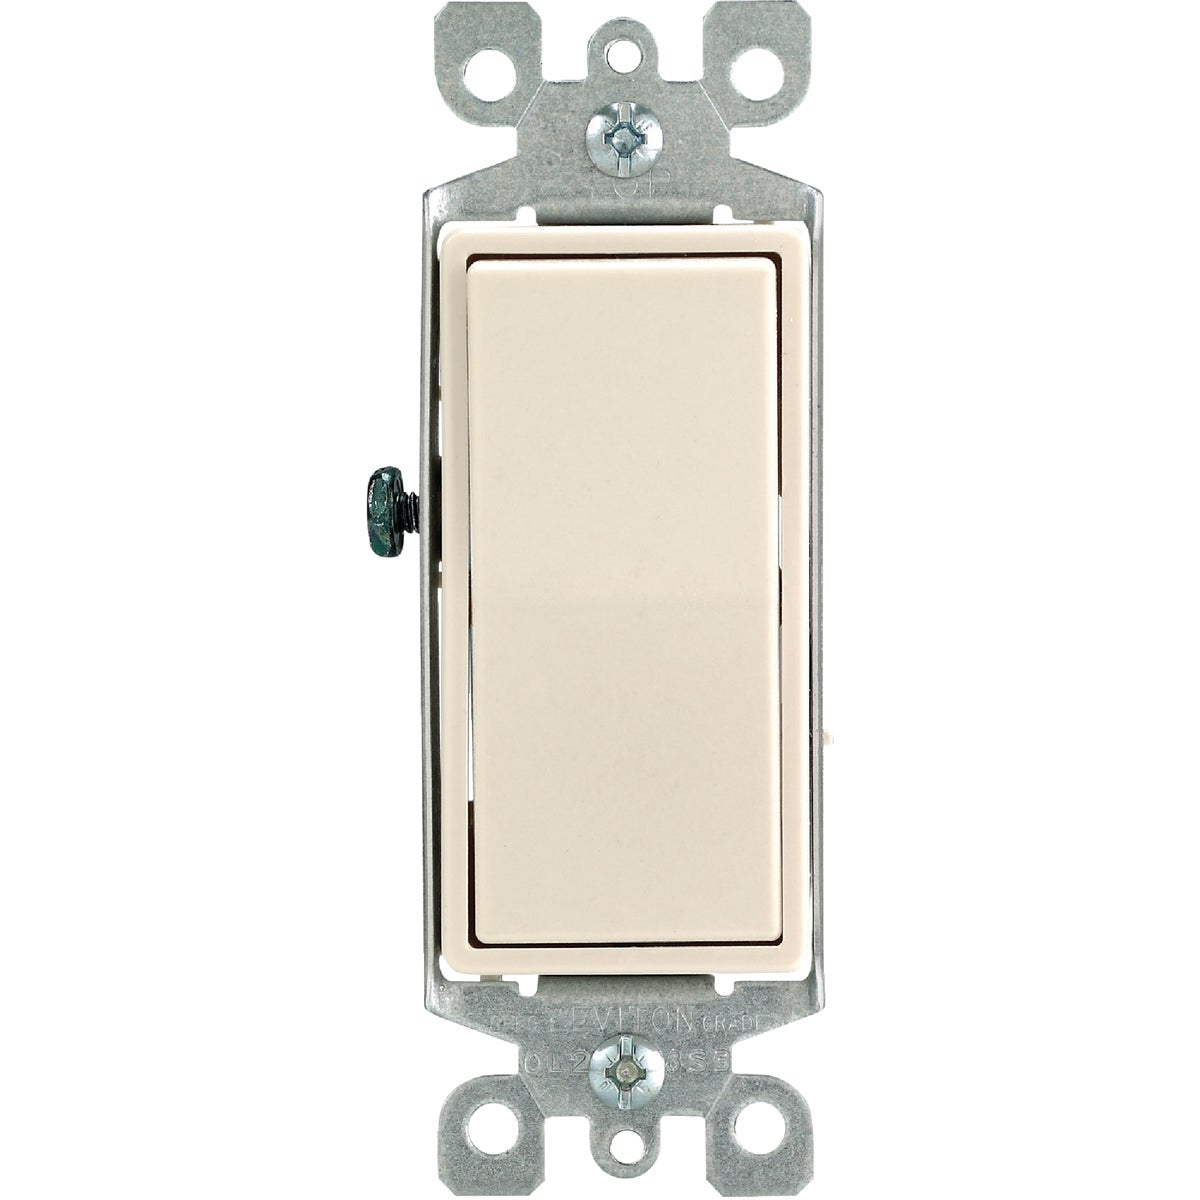 LT ALM 4-WAY GRND SWITCH - S16-05604-2TS by Leviton Mfg Co